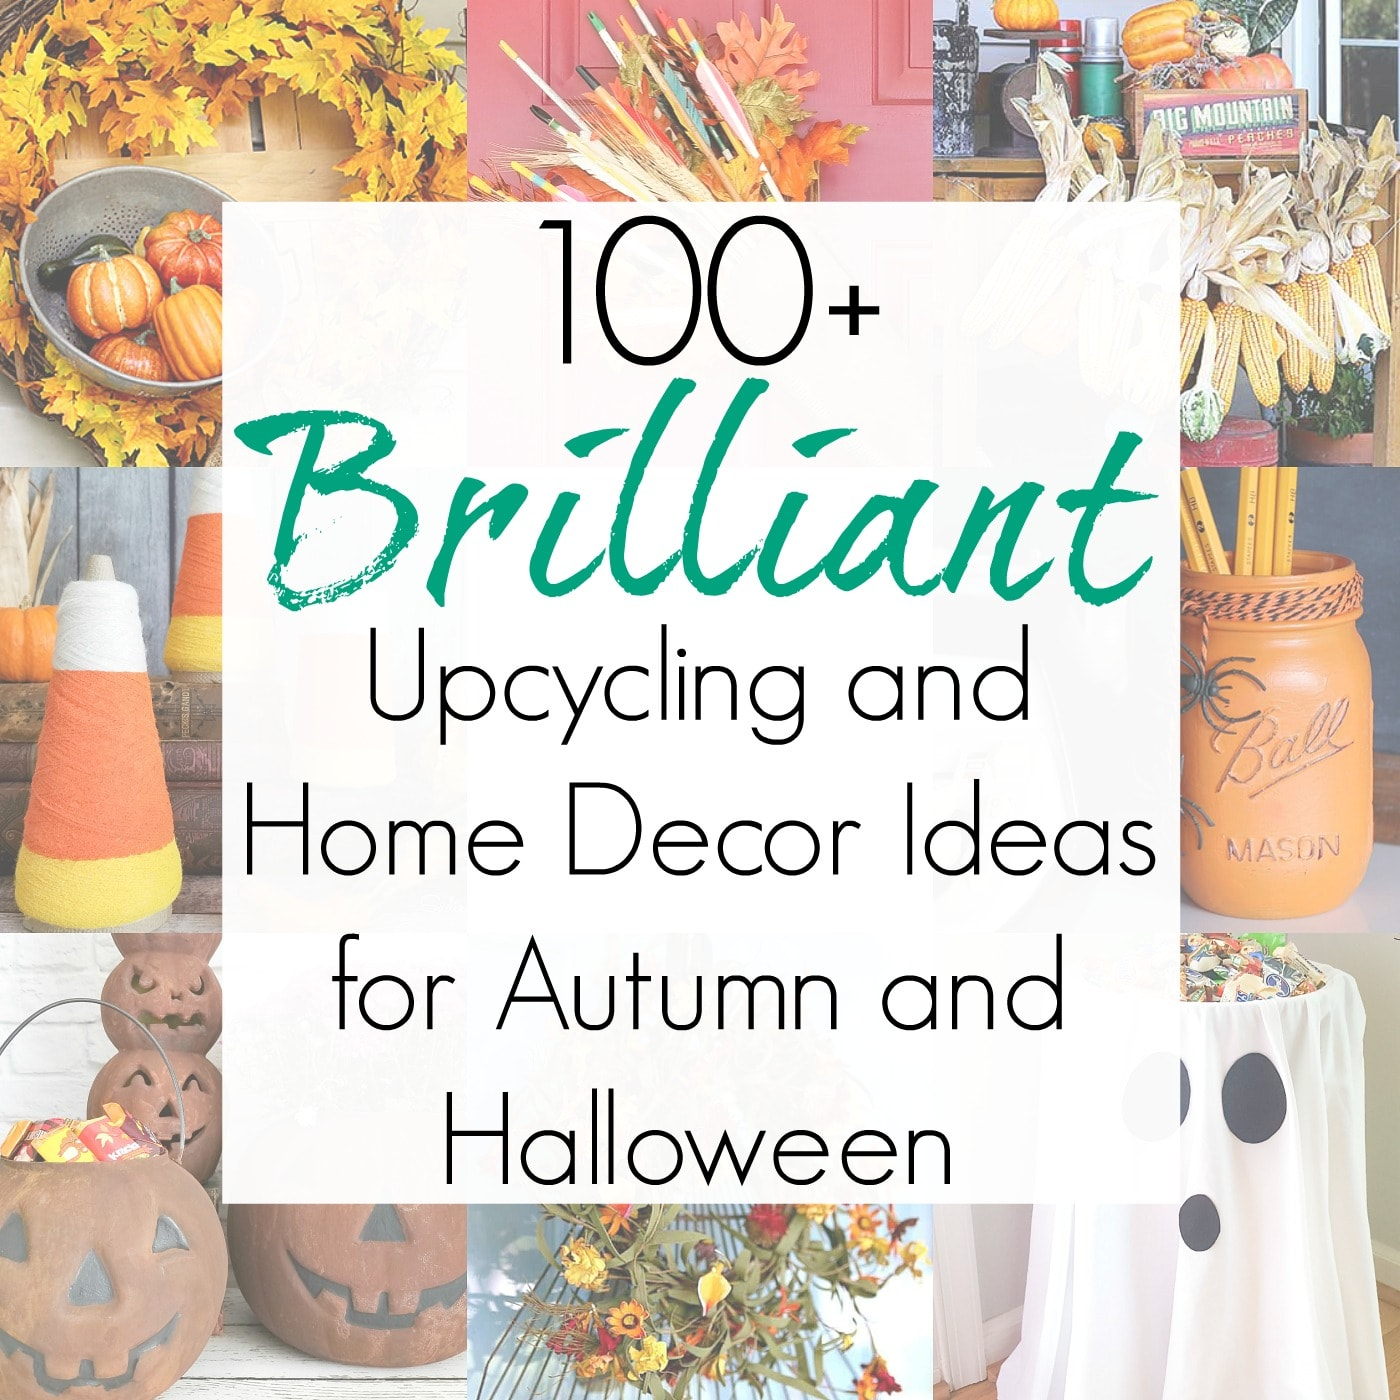 100+ Upcycling Projects for Halloween and Autumn Home Decor